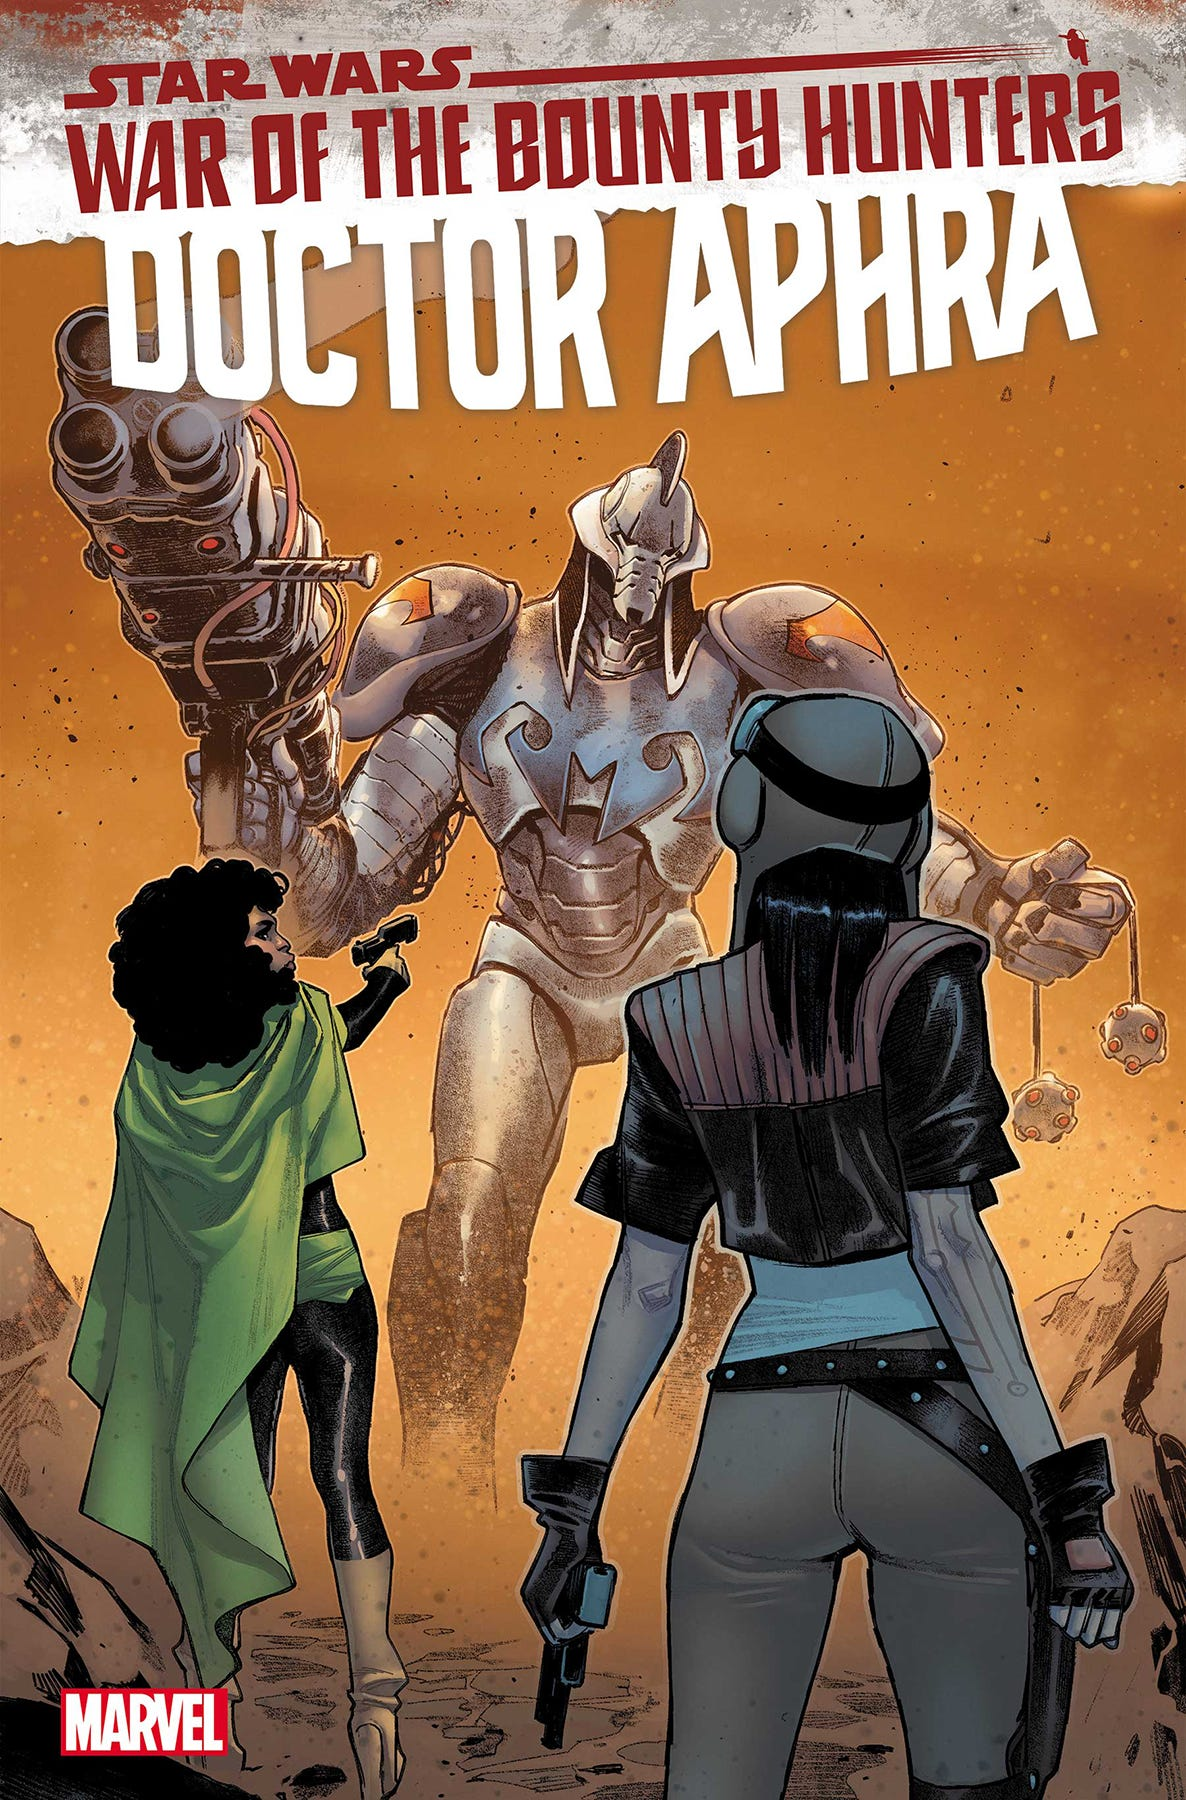 Star Wars Doctor Aphra #11 War of the Bounty Hunters